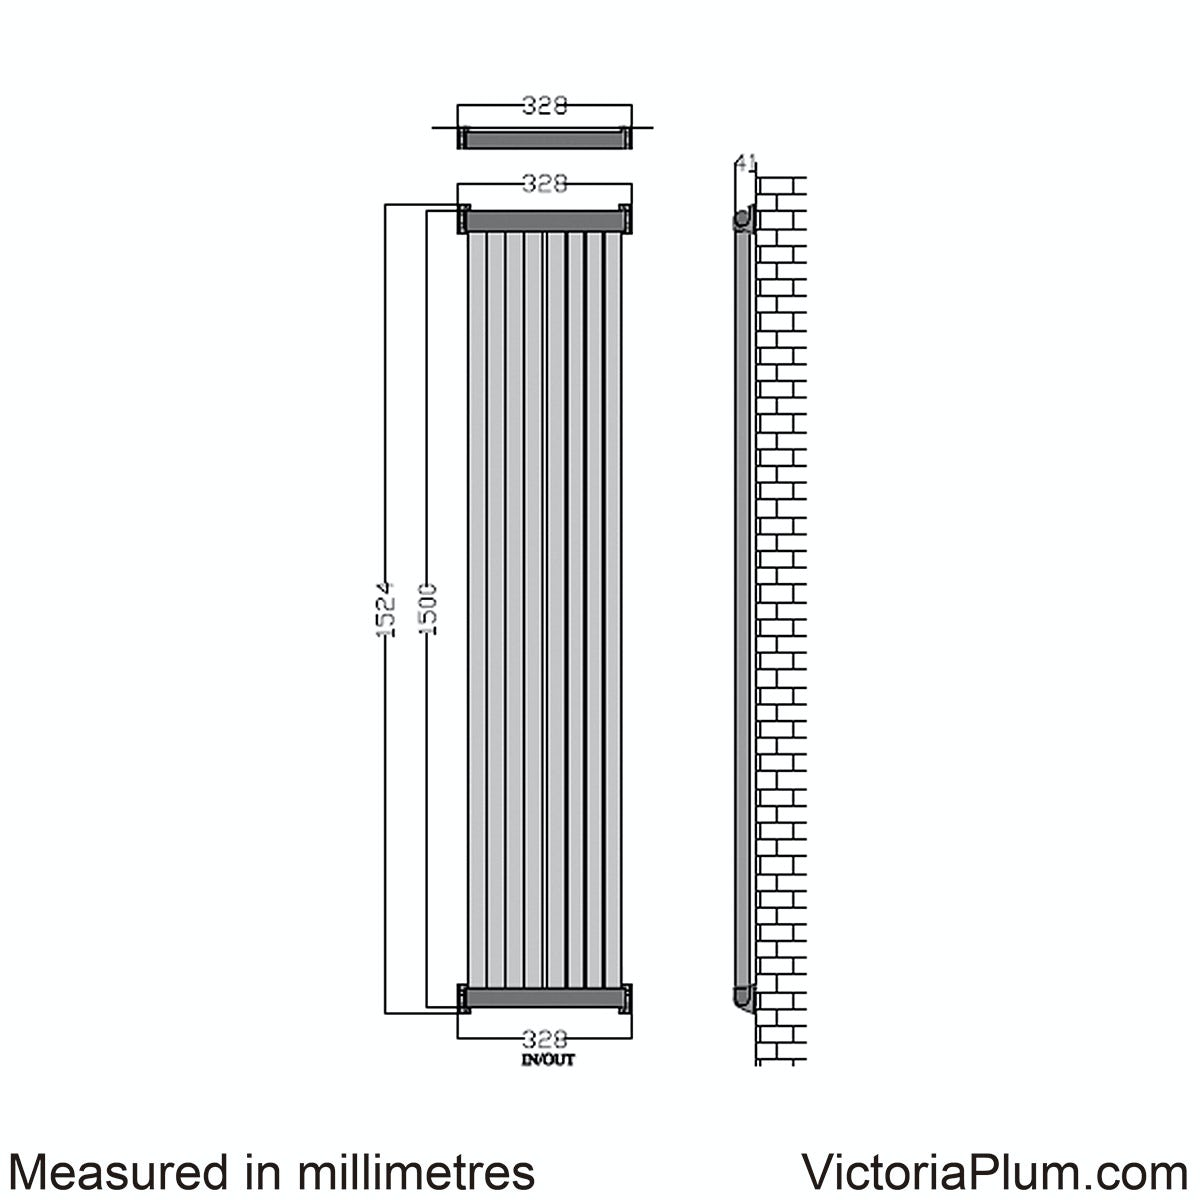 Dimensions for Mode Zephyra anthracite vertical radiator 1500 x 328